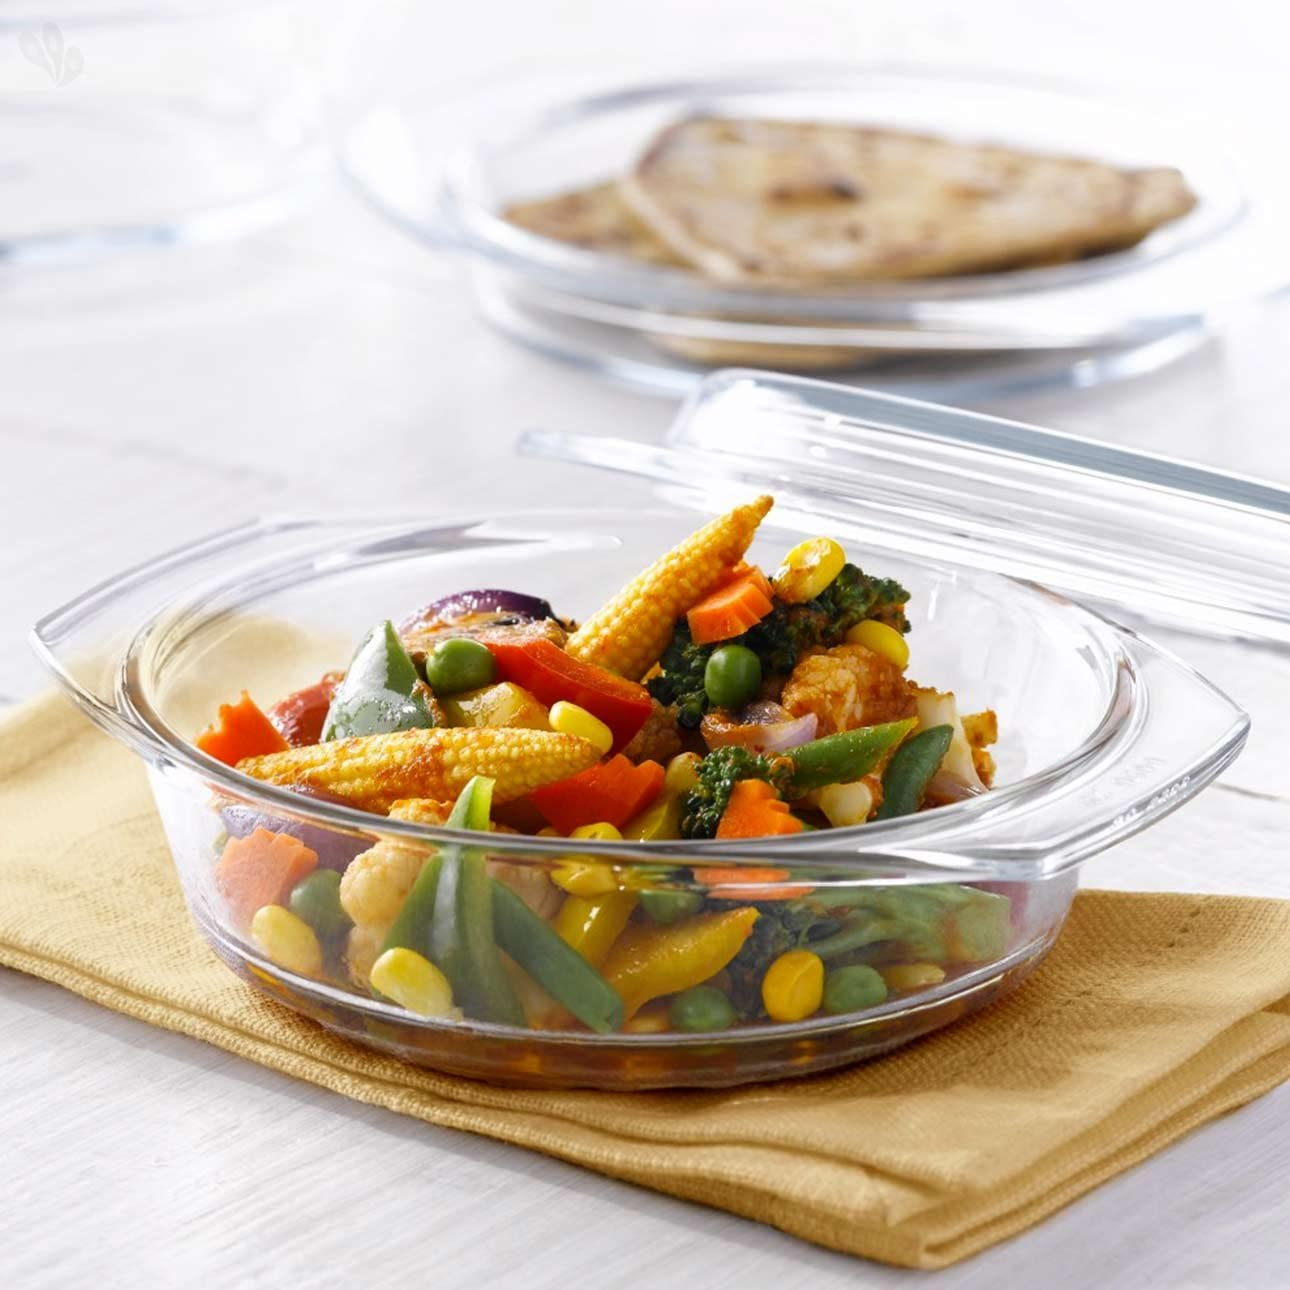 Borosil Glass Casserole - Oven and Microwave Safe Serving Bowl with Glass Lid, 700ml